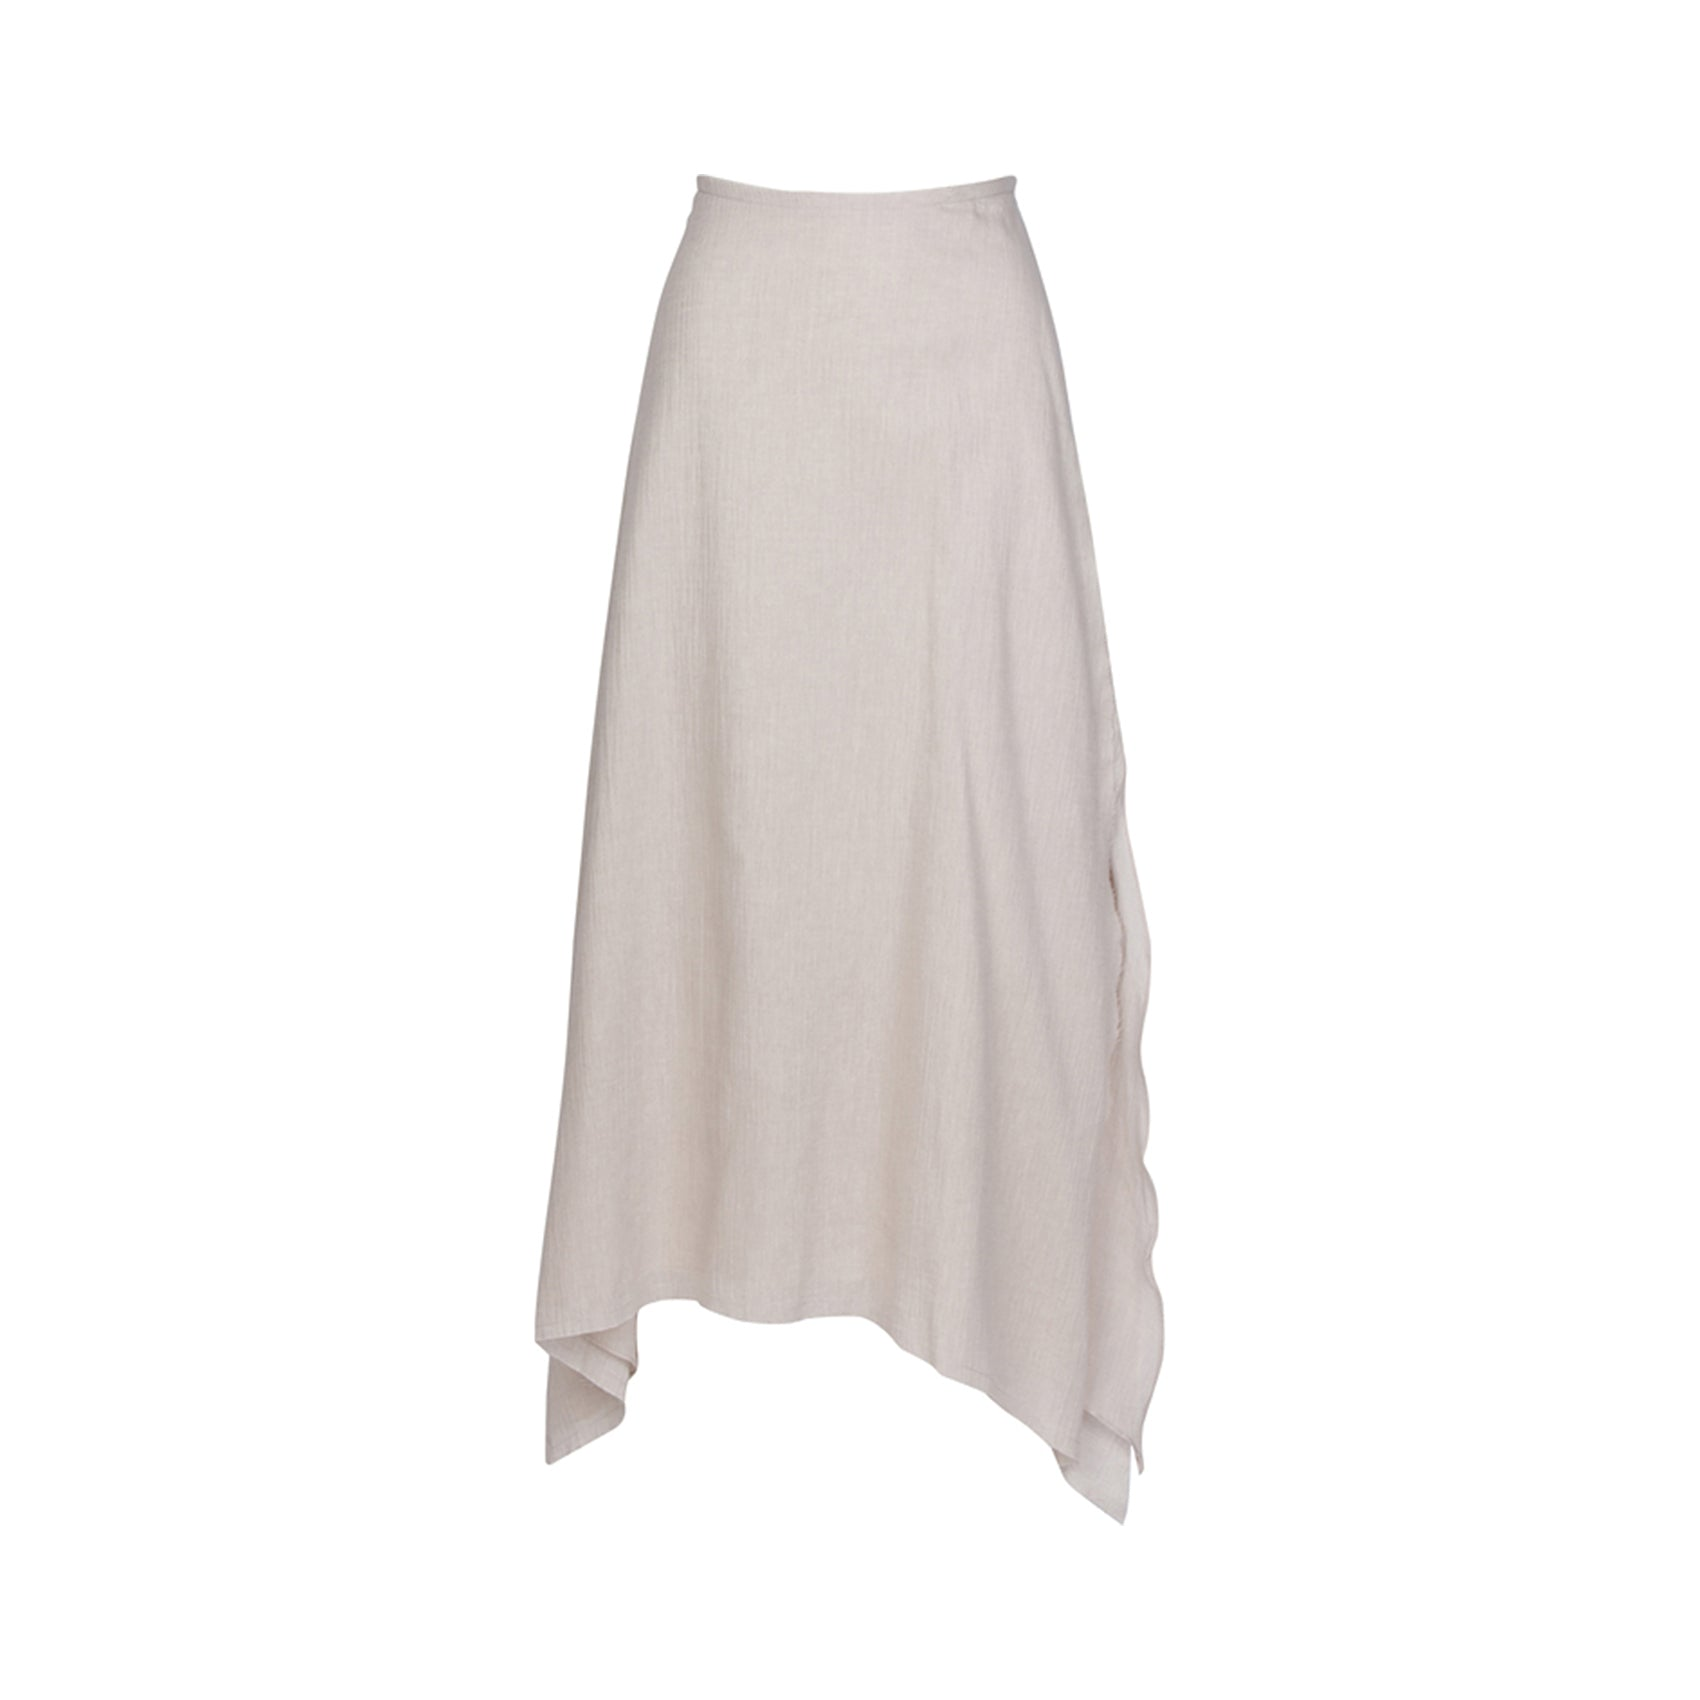 Zuma Skirt in Natural Linen